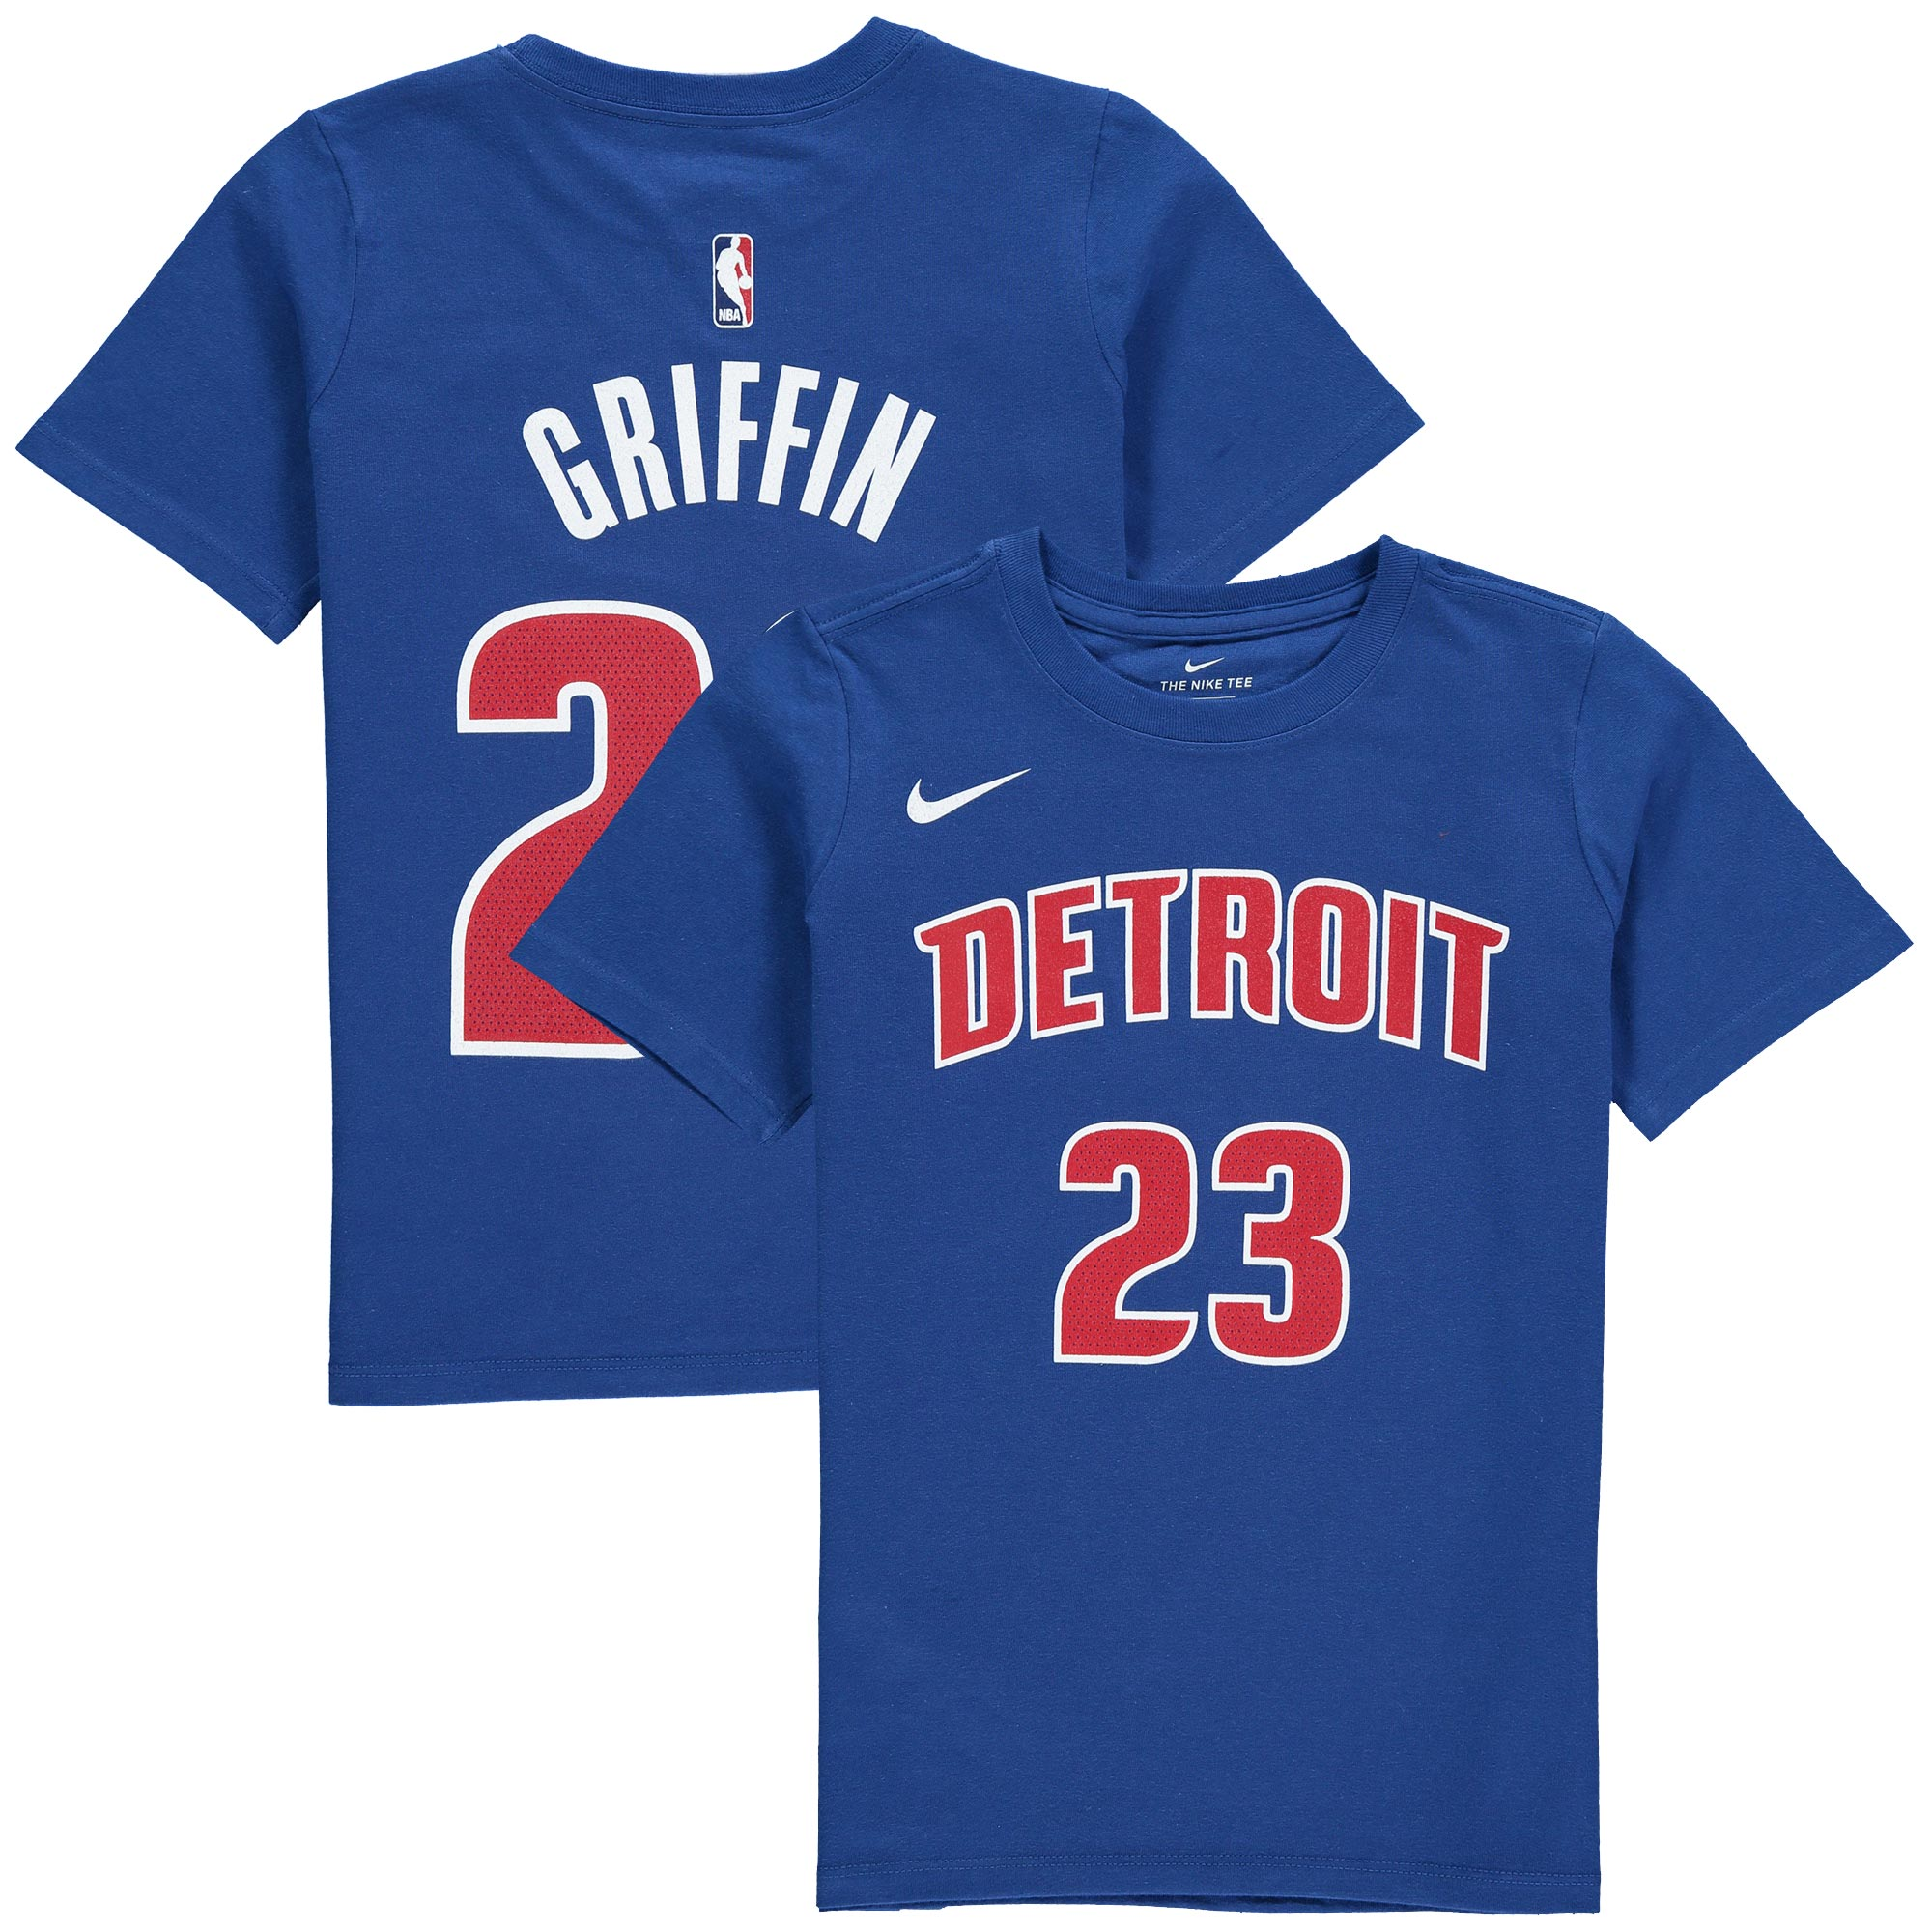 Blake Griffin Detroit Pistons Nike Youth Name & Number Performance T-Shirt - Blue